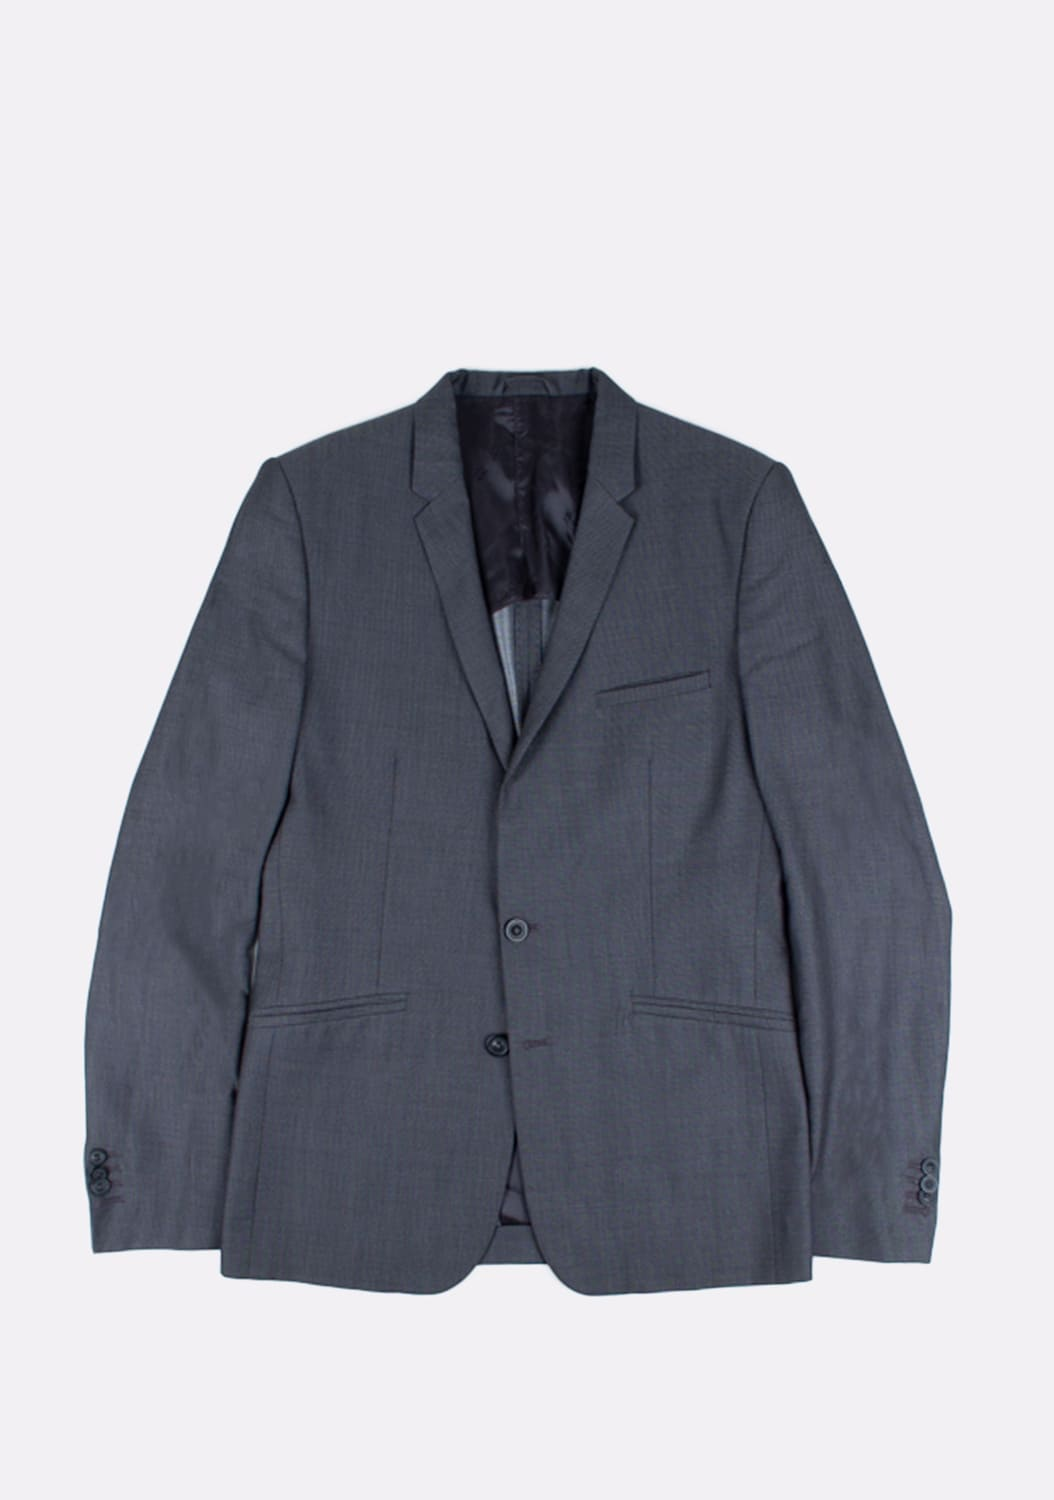 urocklt-Maison-Martin-Margiela-Jacket-Slim-Wool-Silk-Blend-Blazer-48-ITA-Grey (1)